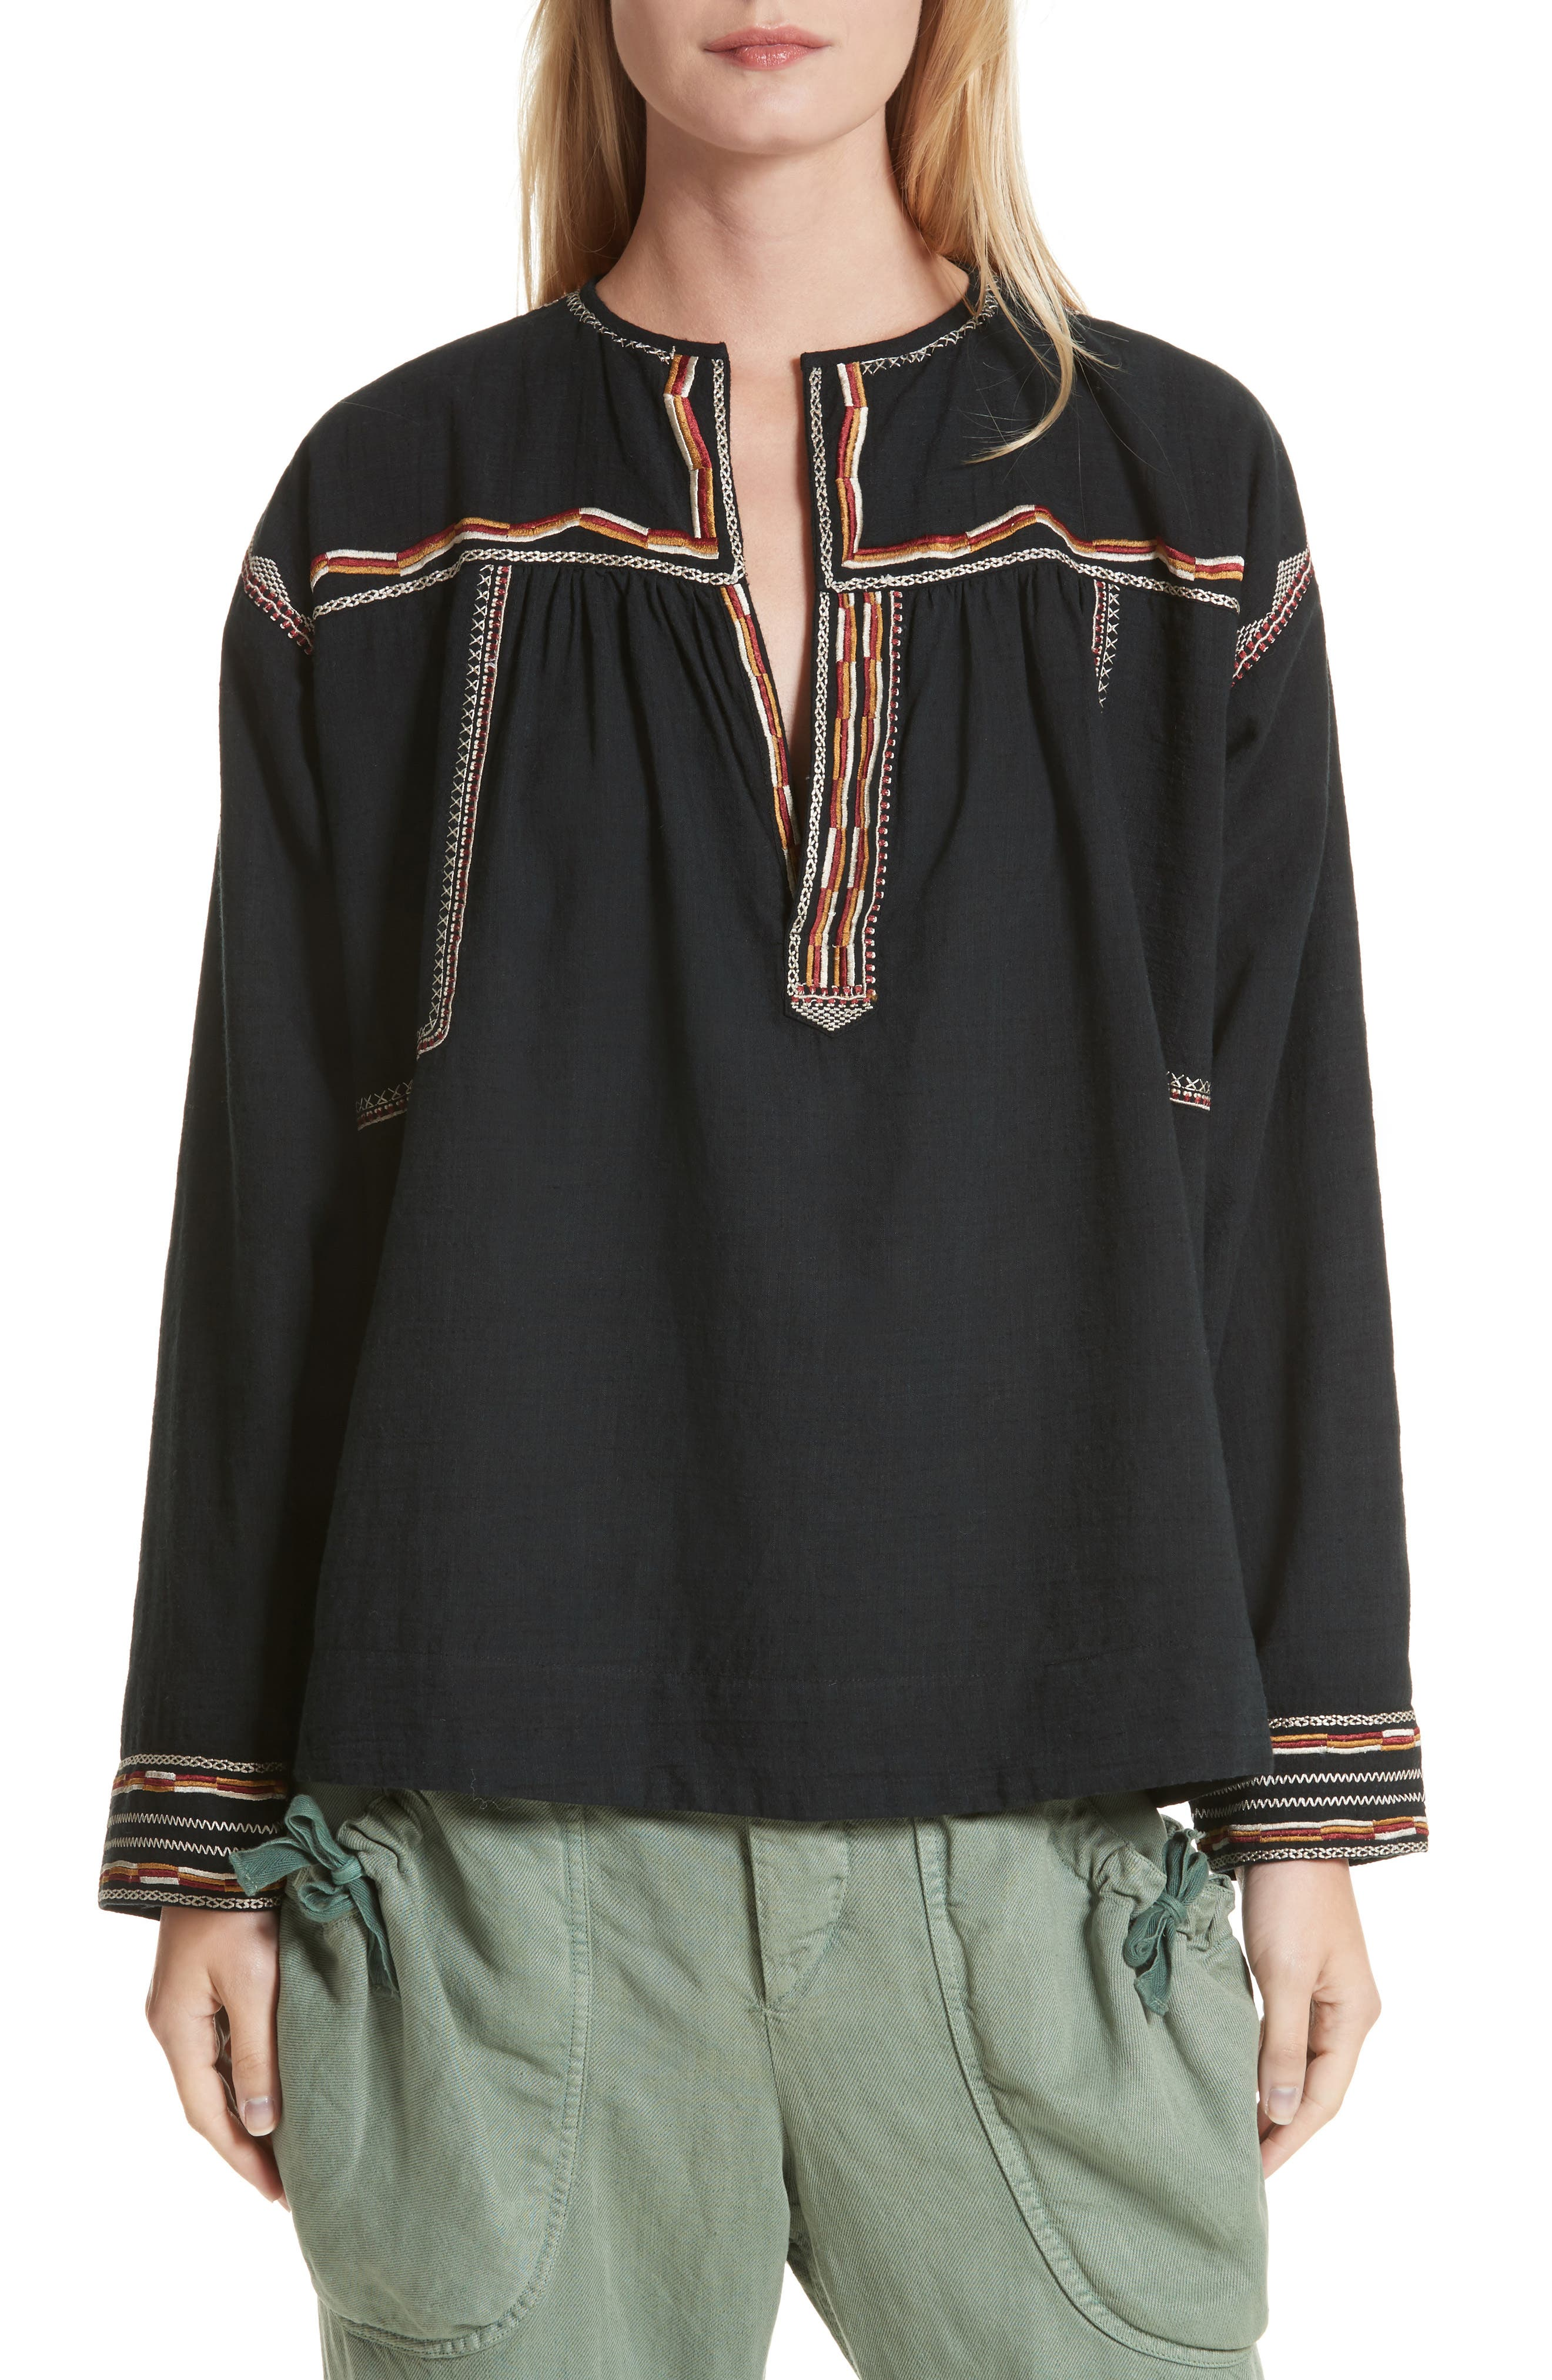 Isabel Marant Étoile Blicky Embroidered Top,                         Main,                         color, 001